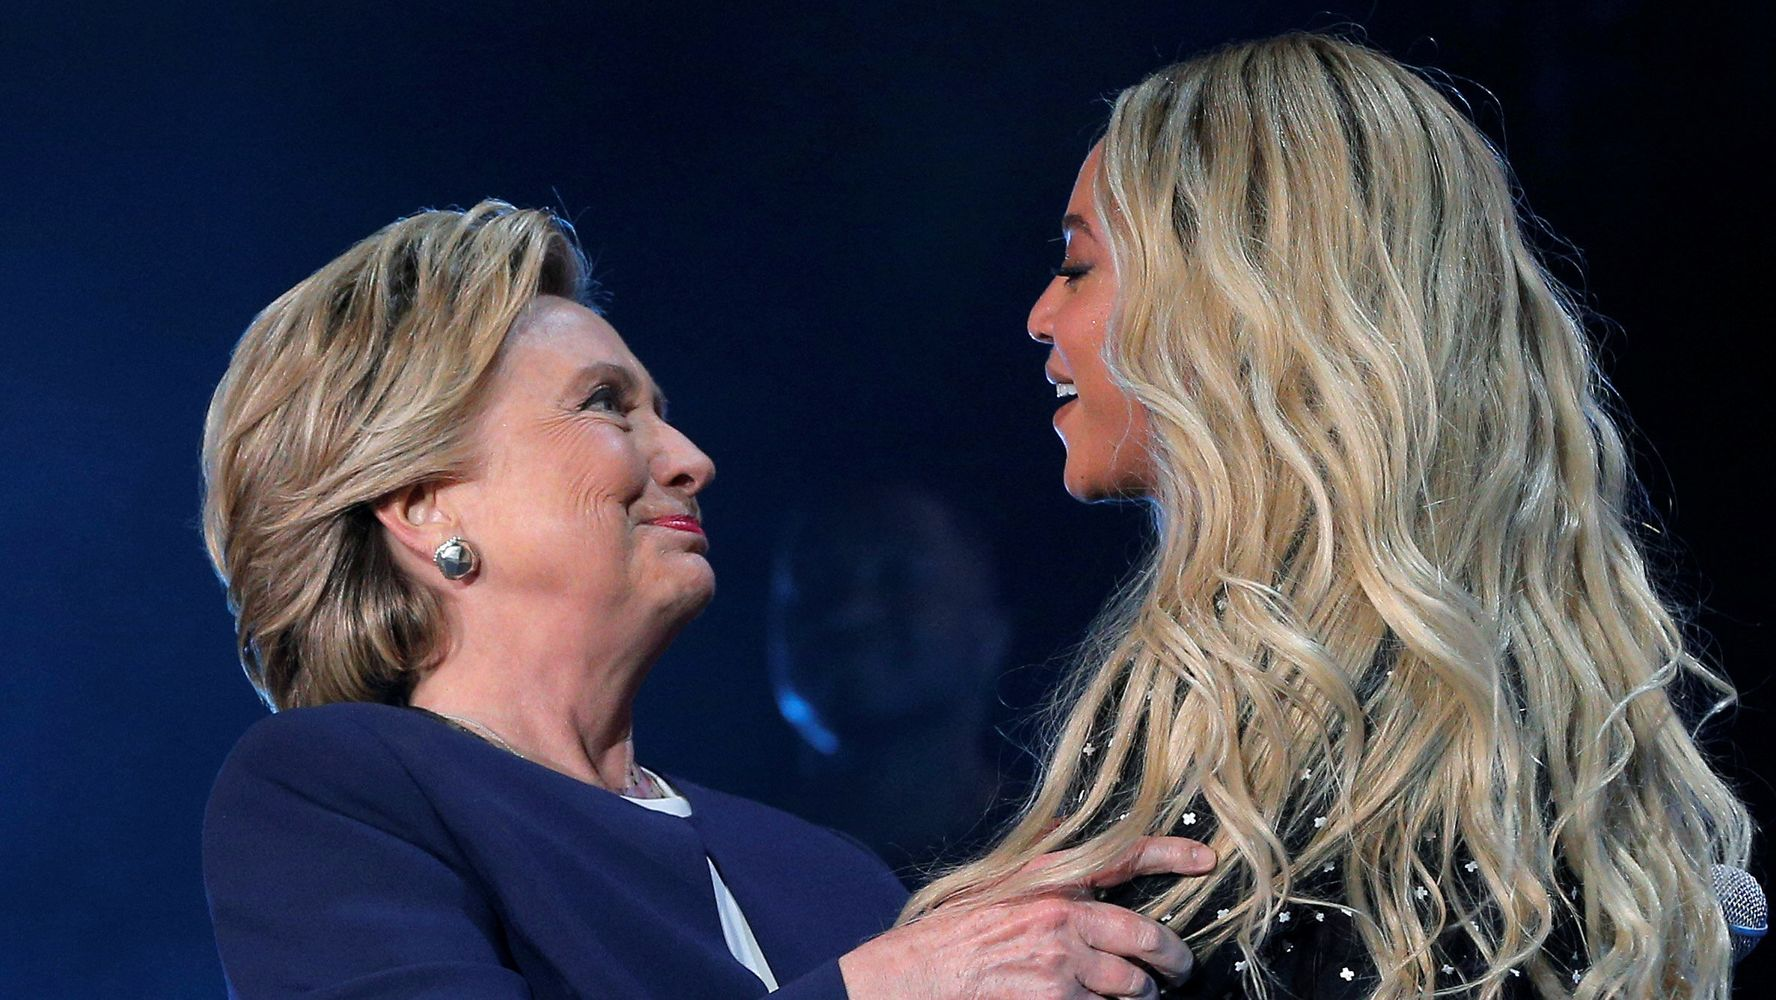 Beyoncé Used A Famous Hillary Clinton Quote To Make A Big Feminist Statement